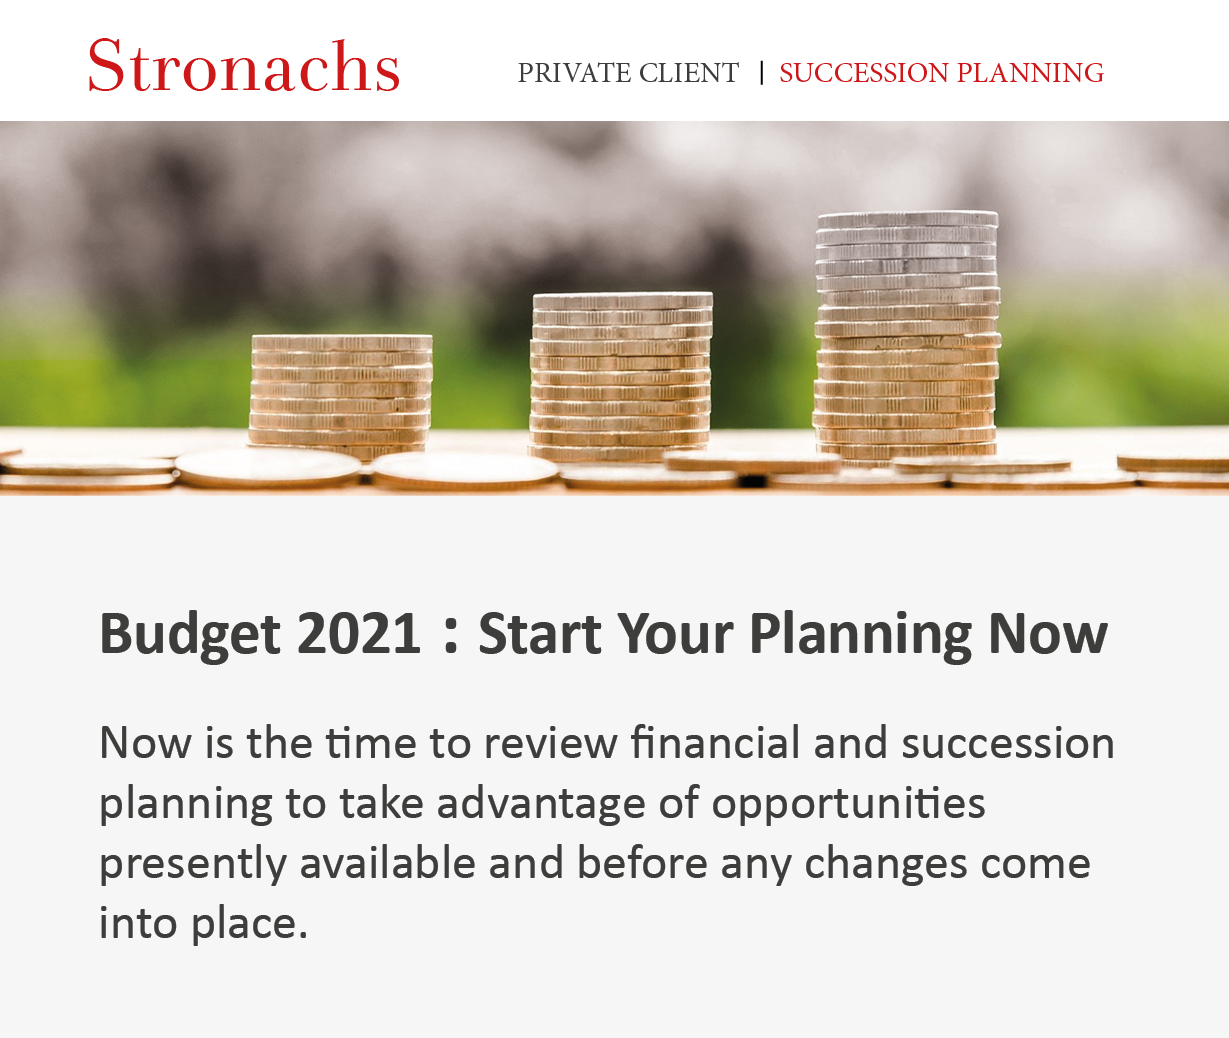 Budget 2021 - Start Your Planning Now